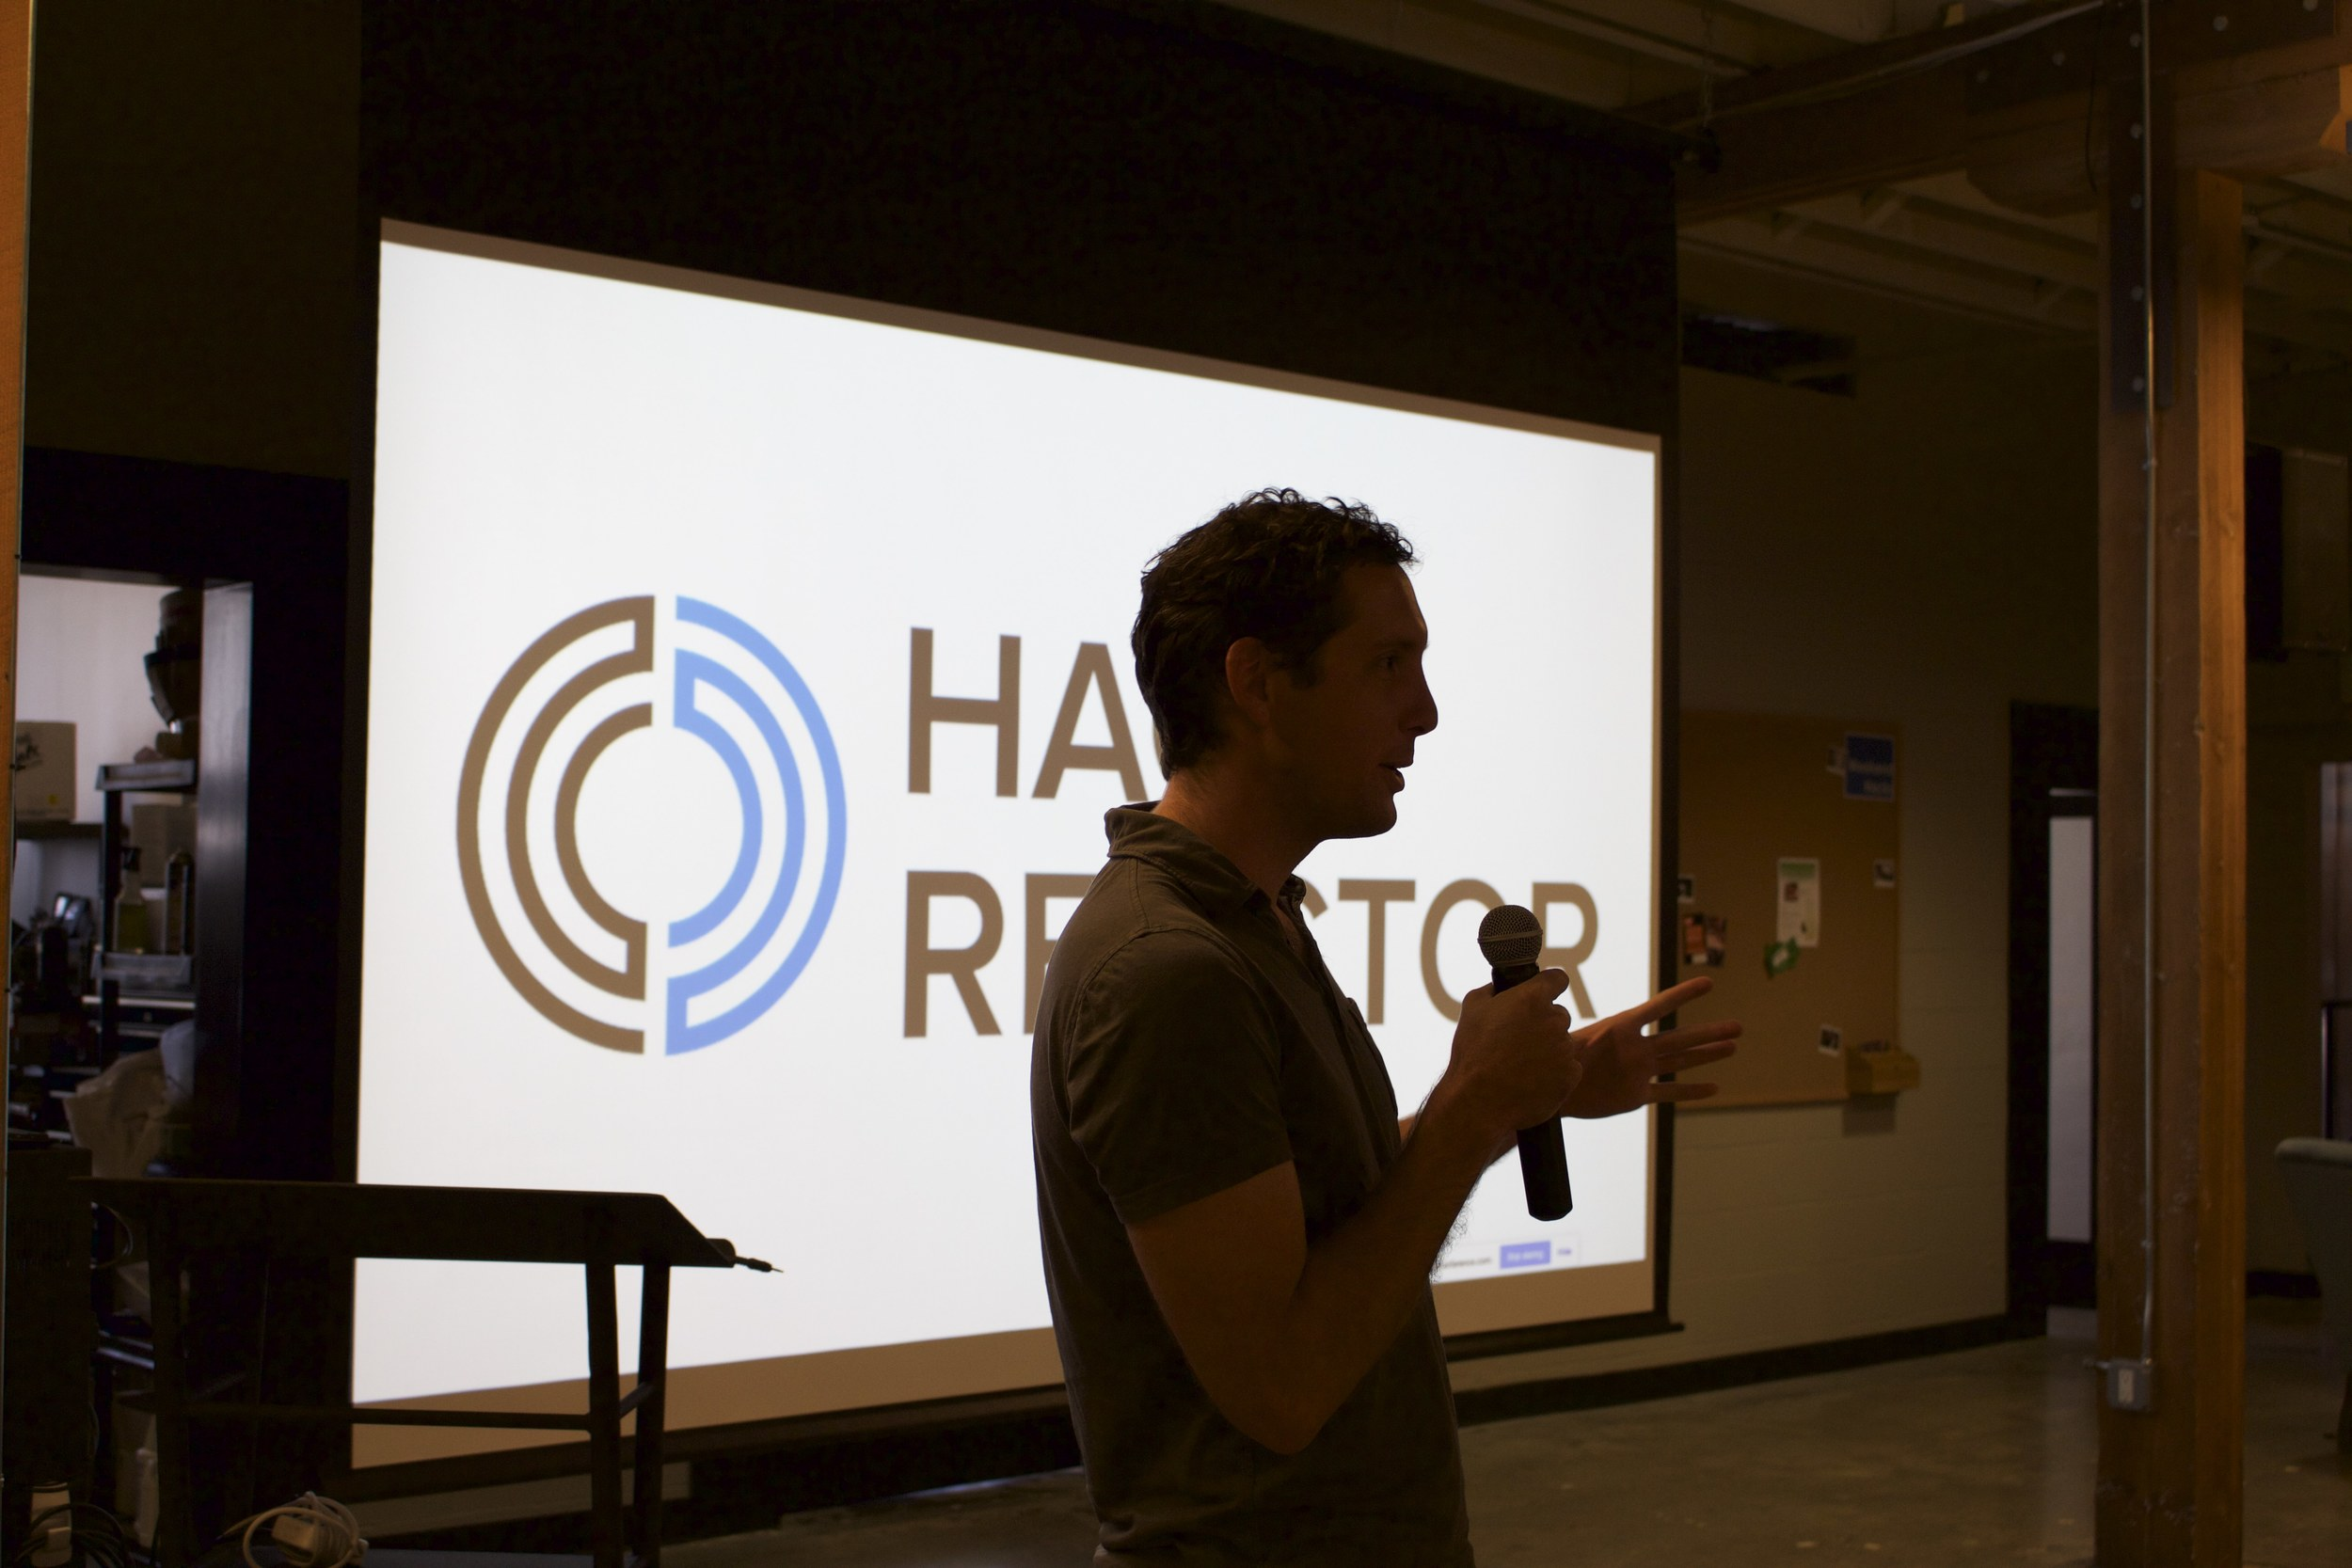 Cofounder Shawn Drost Discusses Initiative to Teach Prisoners to Code at Planet Labs Colloquium's Image